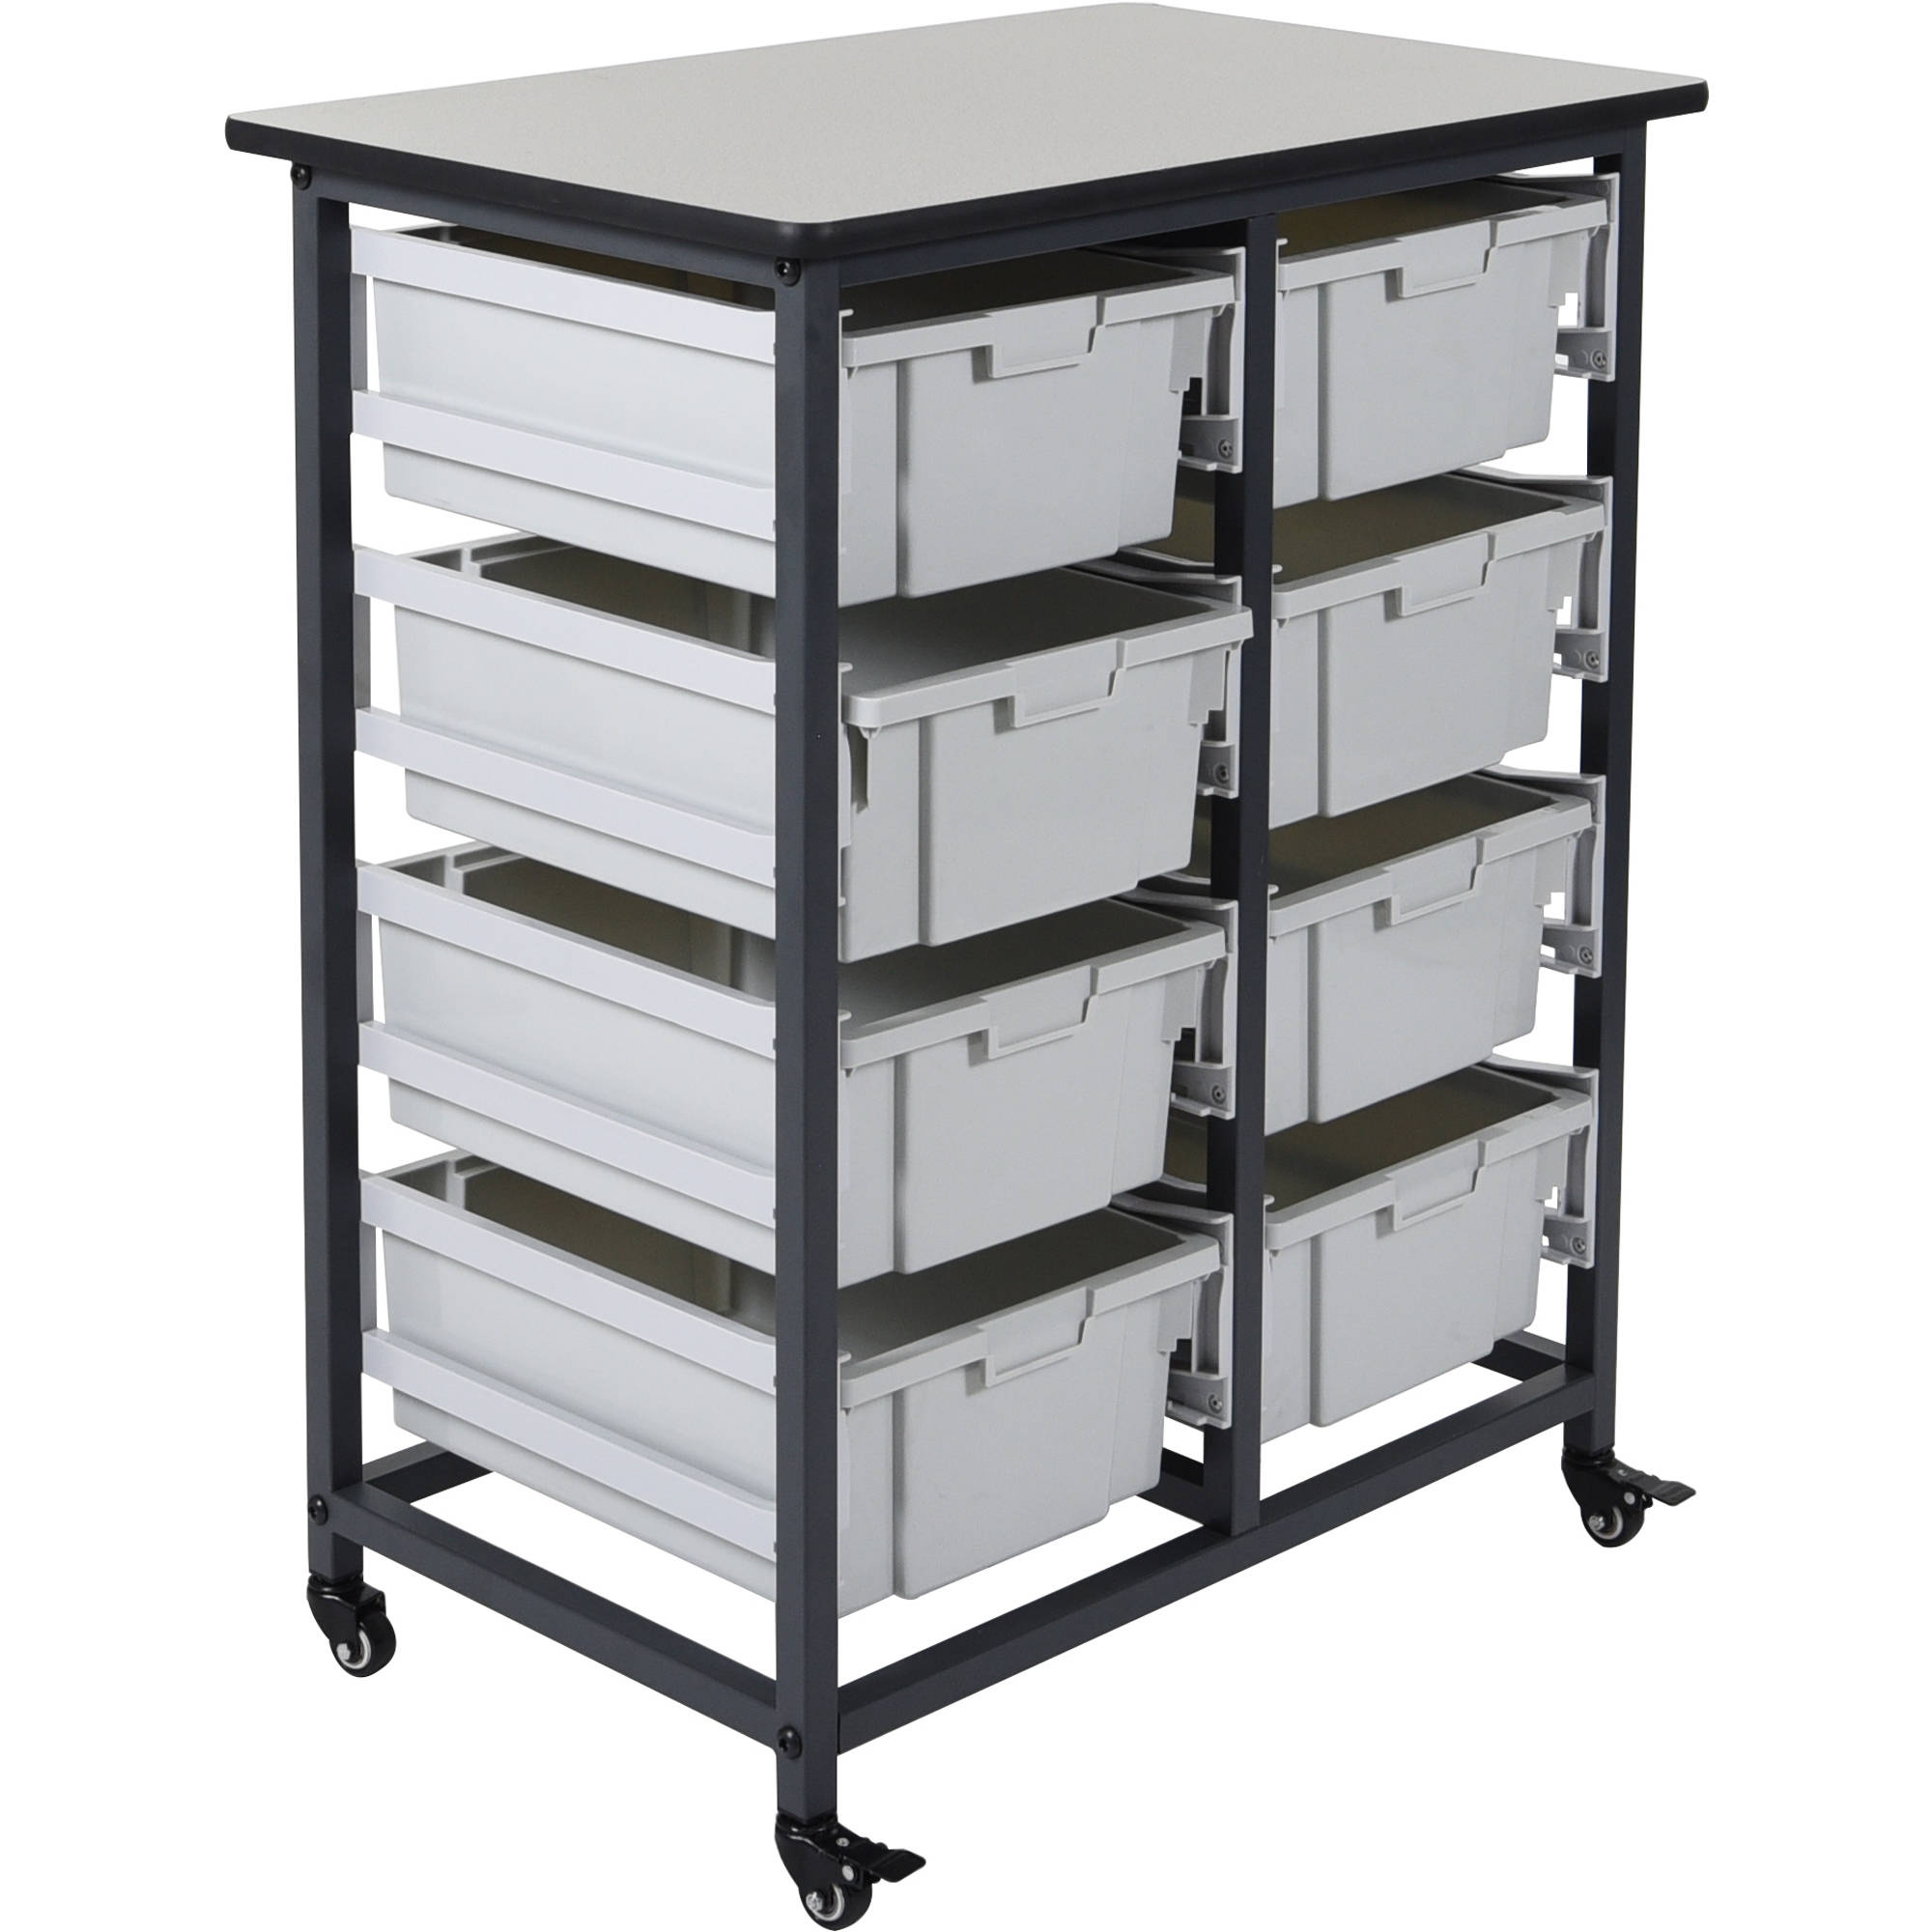 Delicieux Luxor Double Row Mobile Bin Storage Unit (Large Bins)